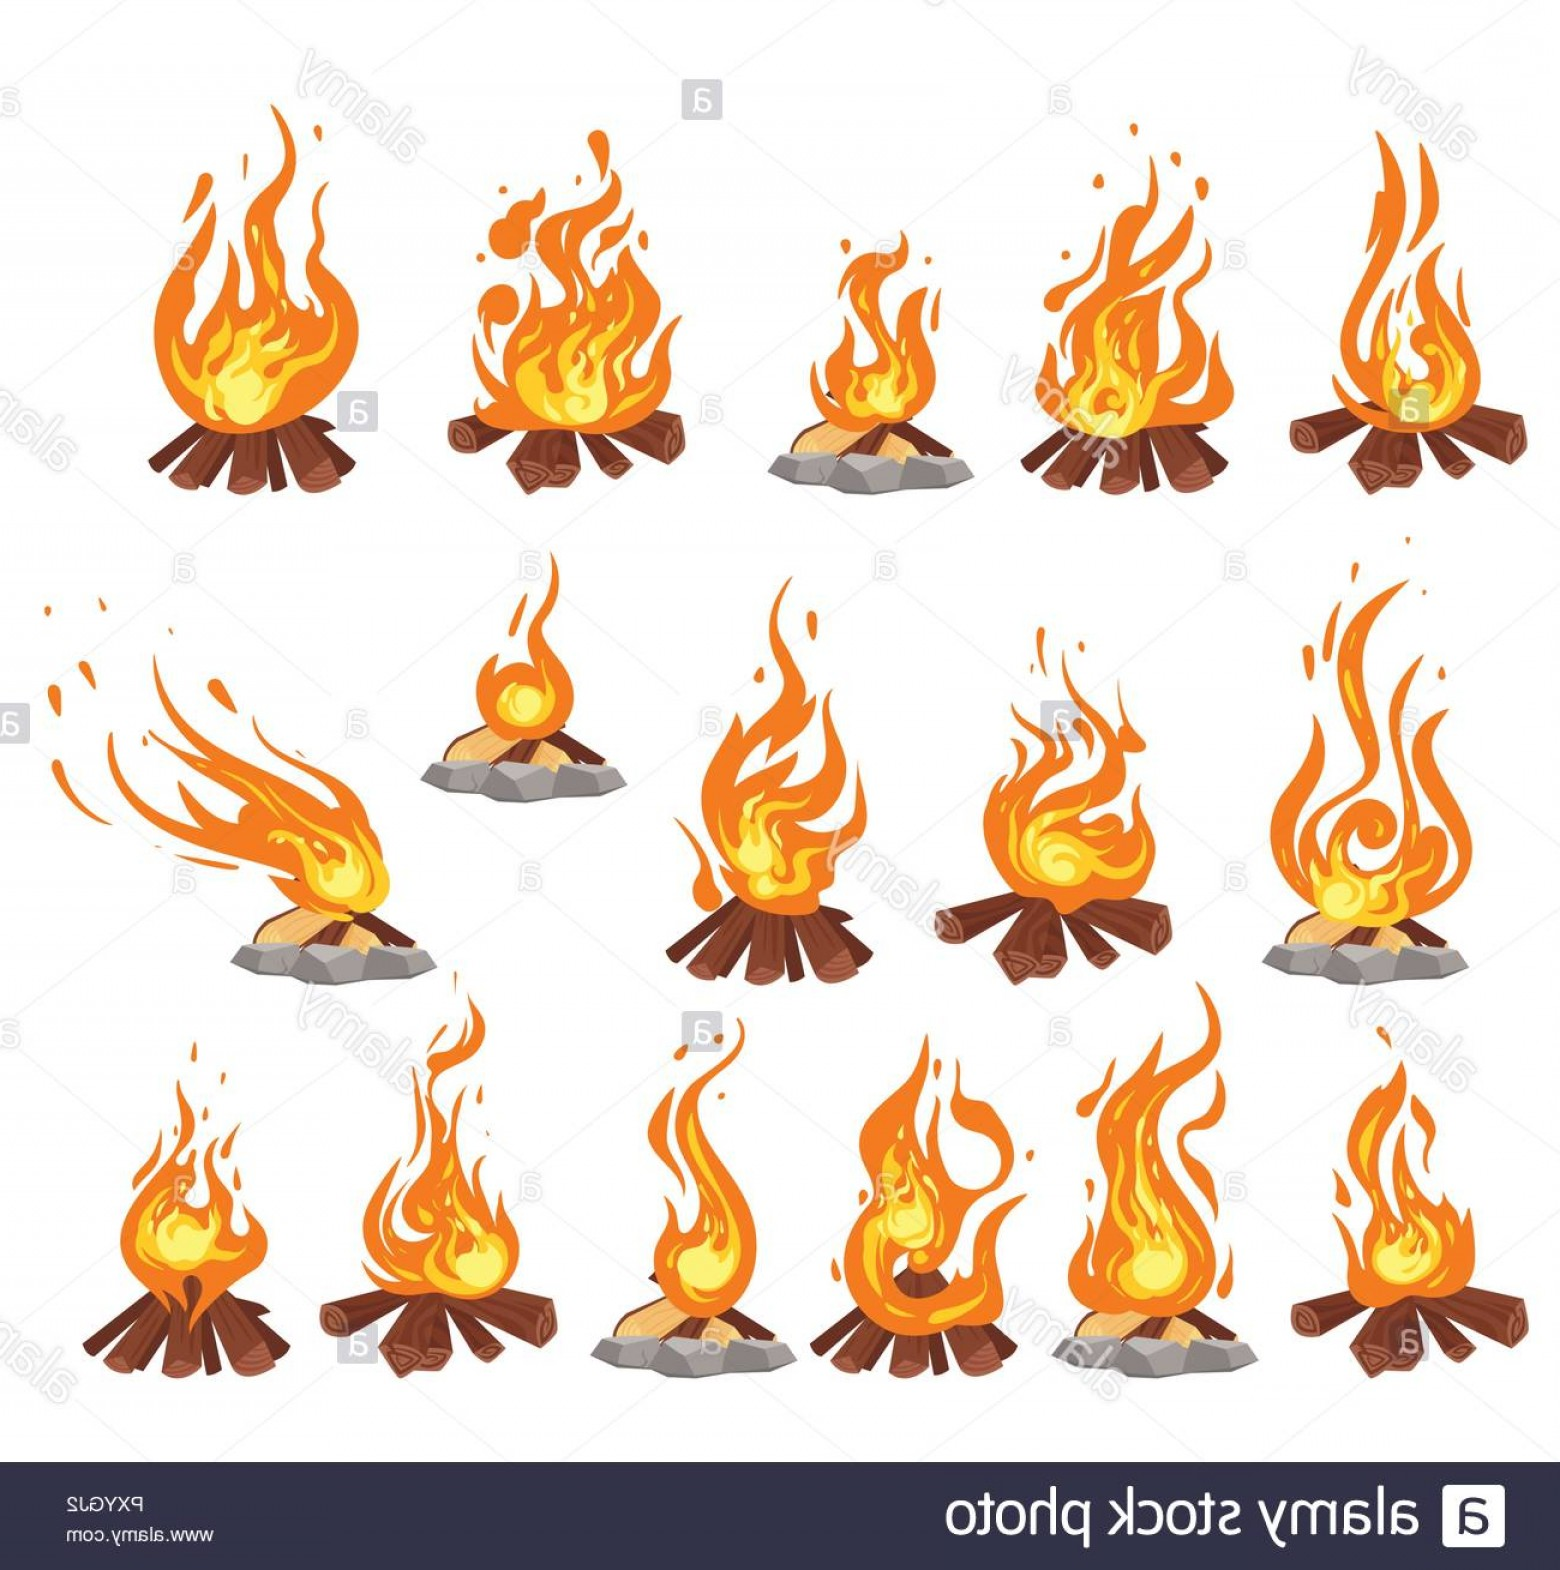 Cartoon Fire Flames Vector: Vector Cartoon Style Set Of Bonfire With Logs Fire Flames Icon For Web Isolated Design On White Background Image